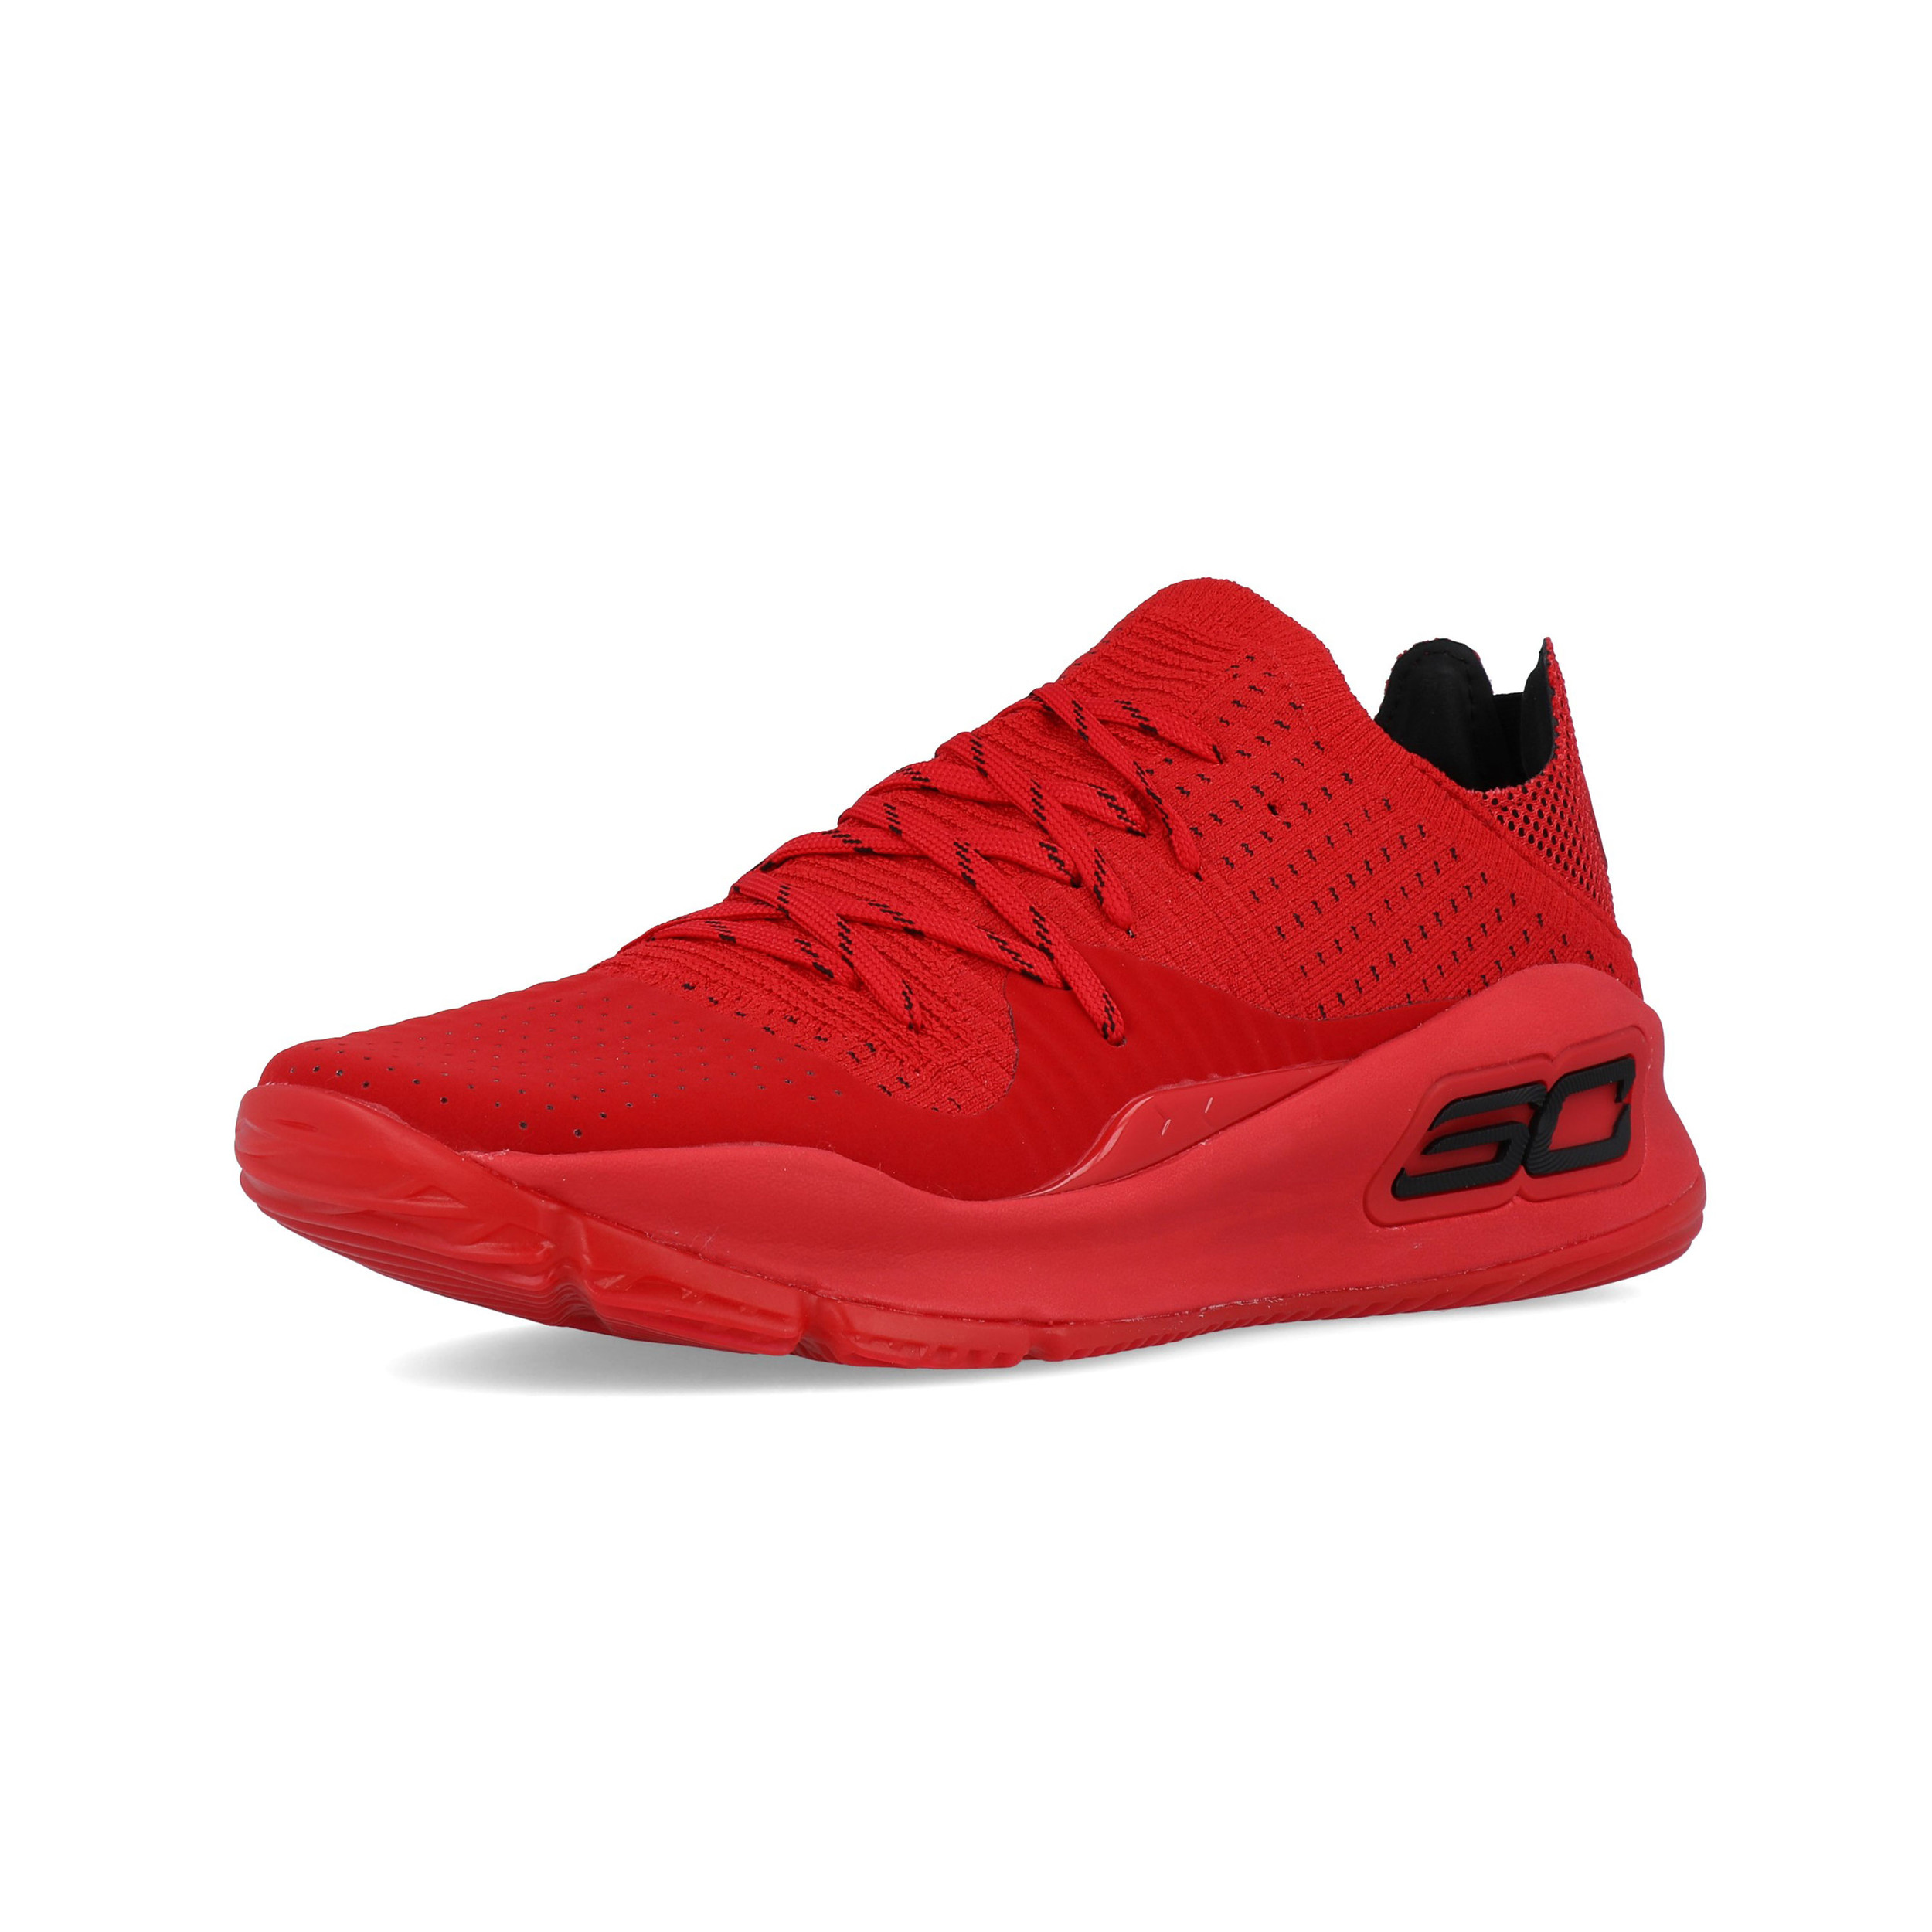 5e8afe5001e6 Under Armour Mens Curry 4 Basketball Shoes Red Sports Breathable Lightweight